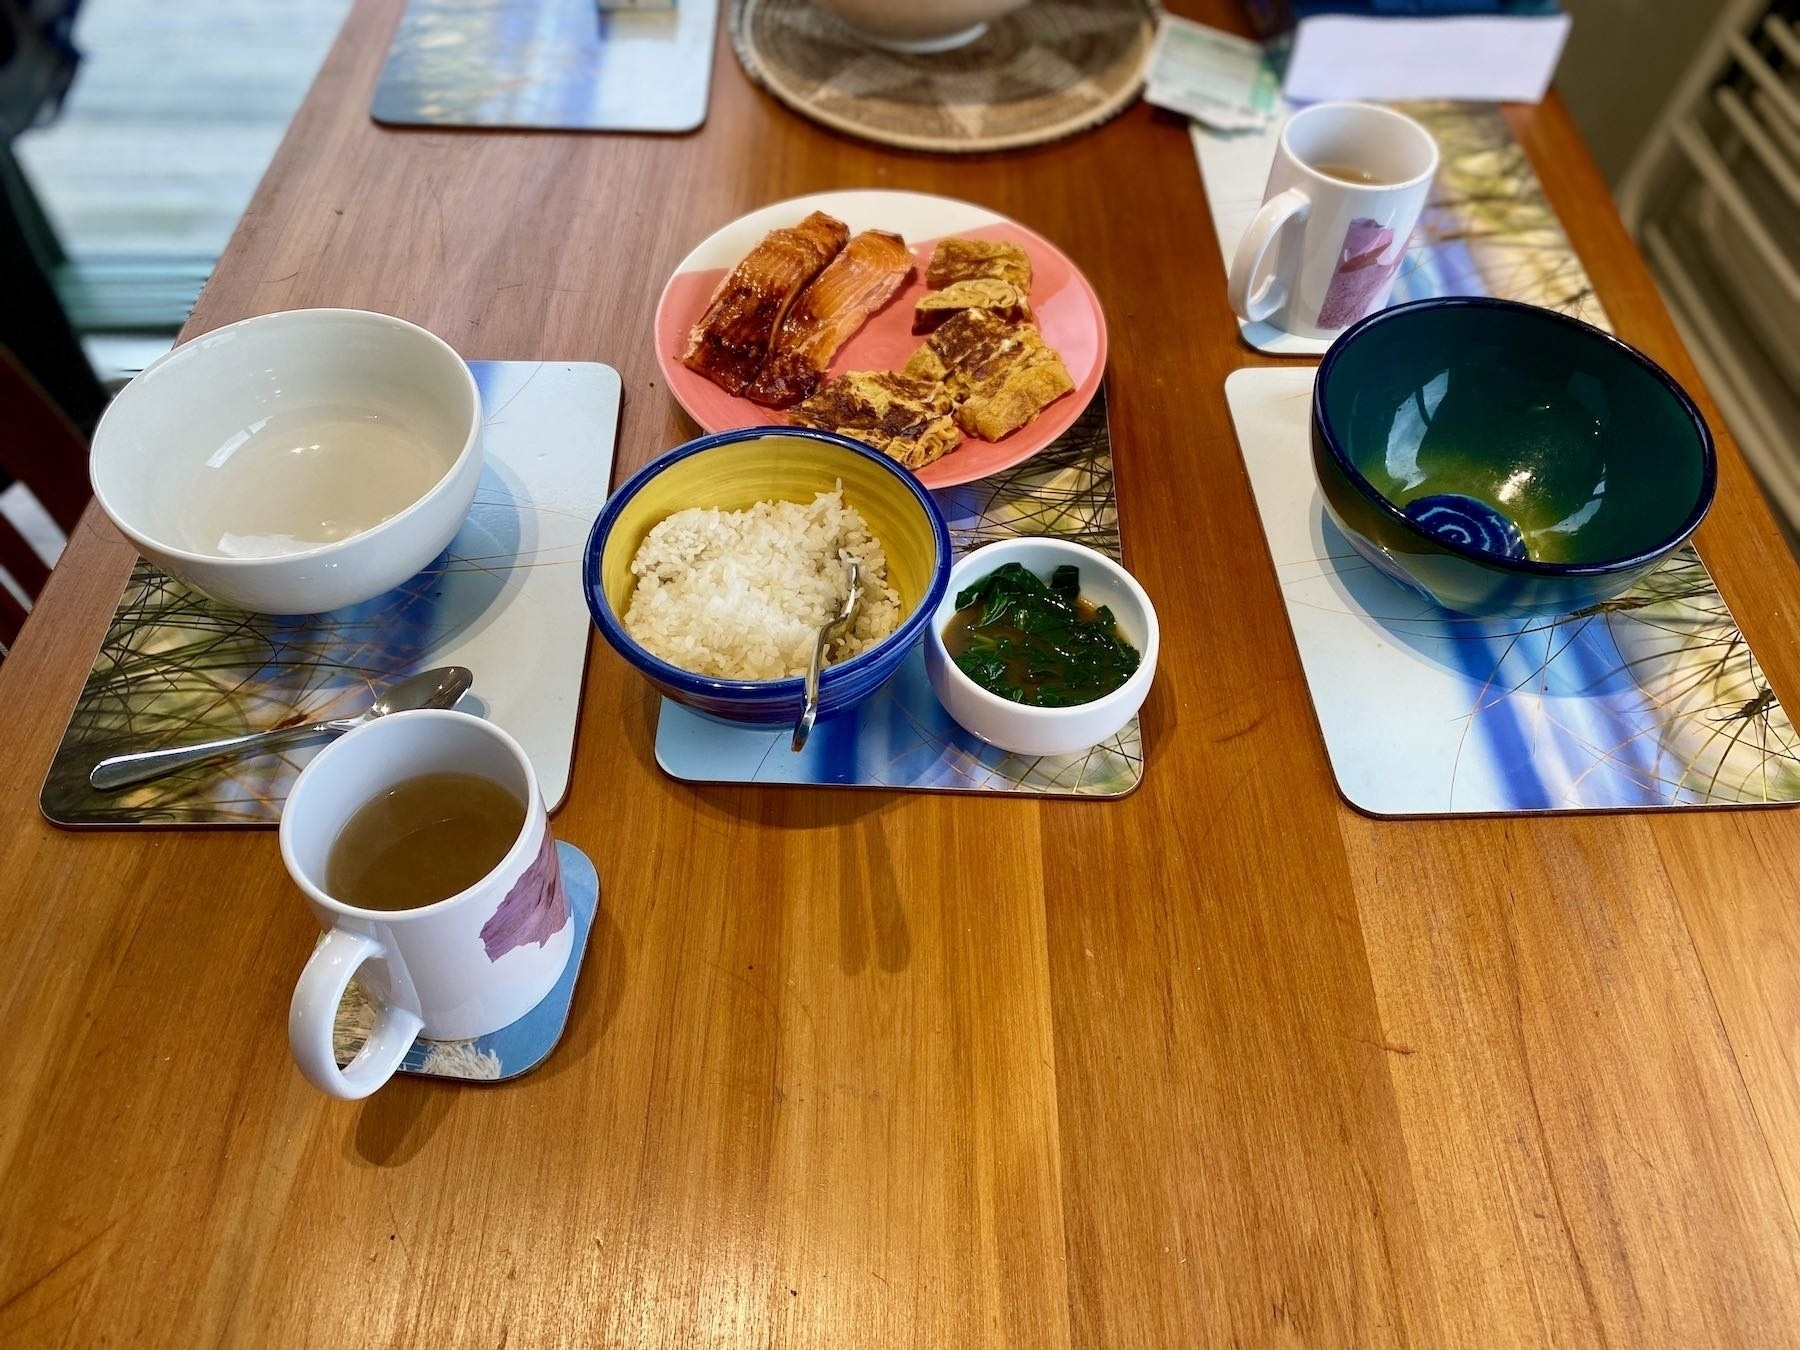 Rice, spinach, salmon, omelette, miso.